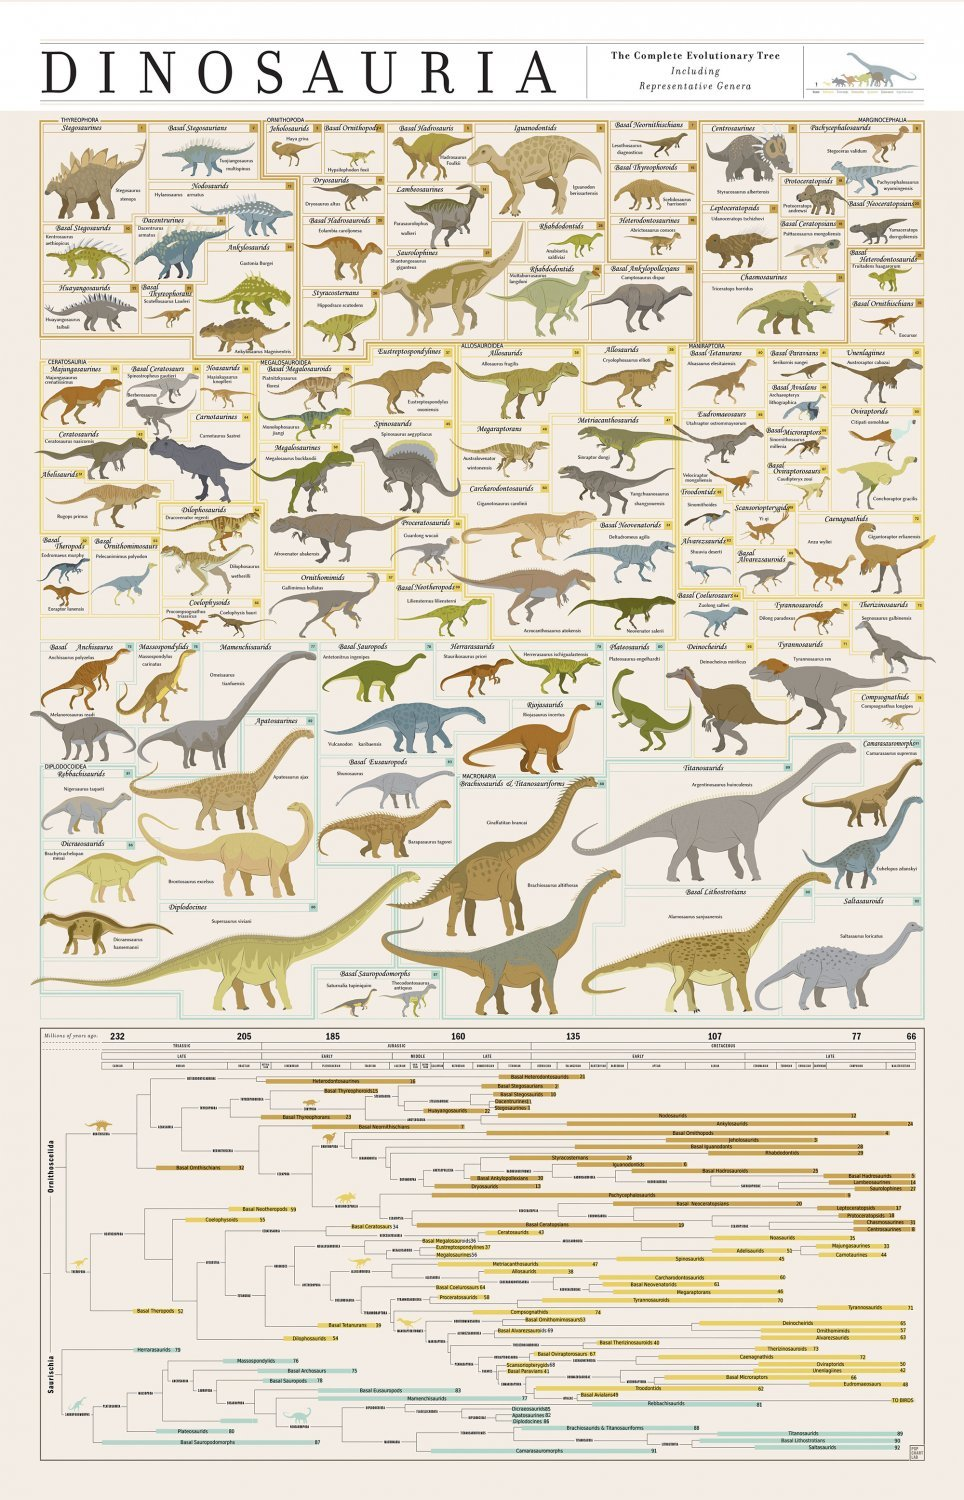 The Complete Evolutionary Dinosaur Tree Chart  18x28 inches Poster Print